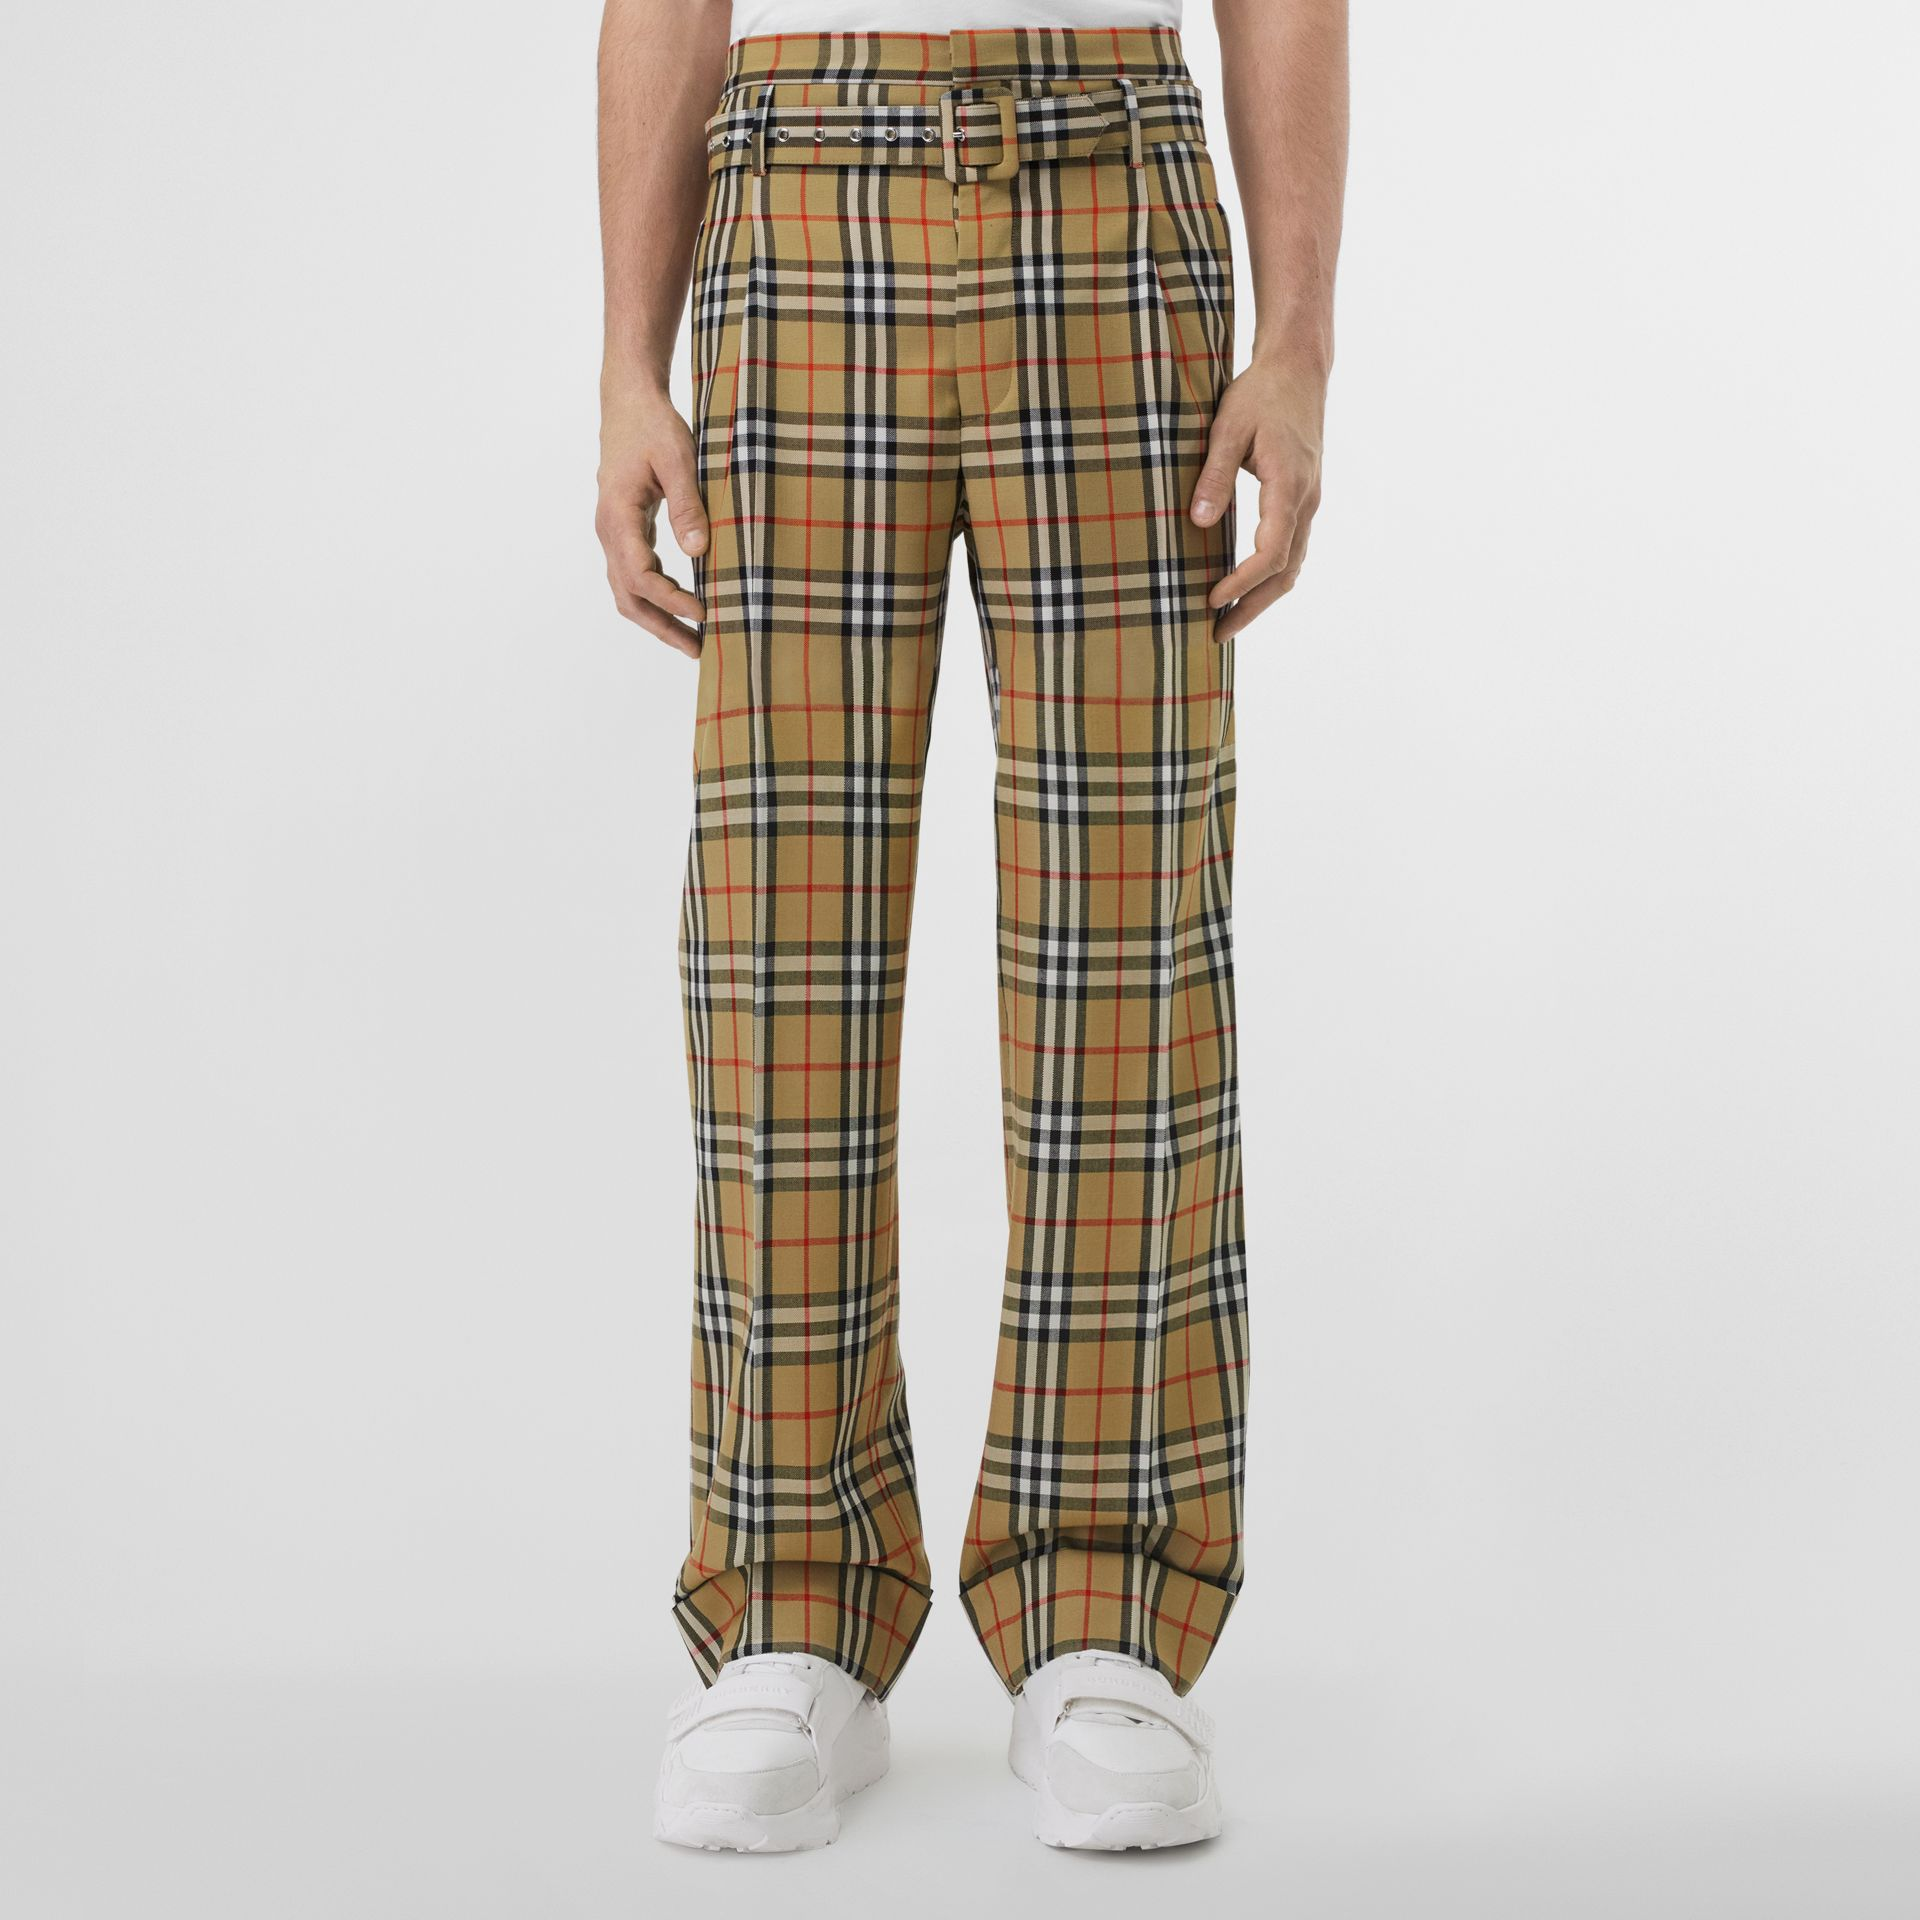 Pantalon taille haute en laine à motif Vintage check (Jaune Antique) | Burberry - photo de la galerie 4